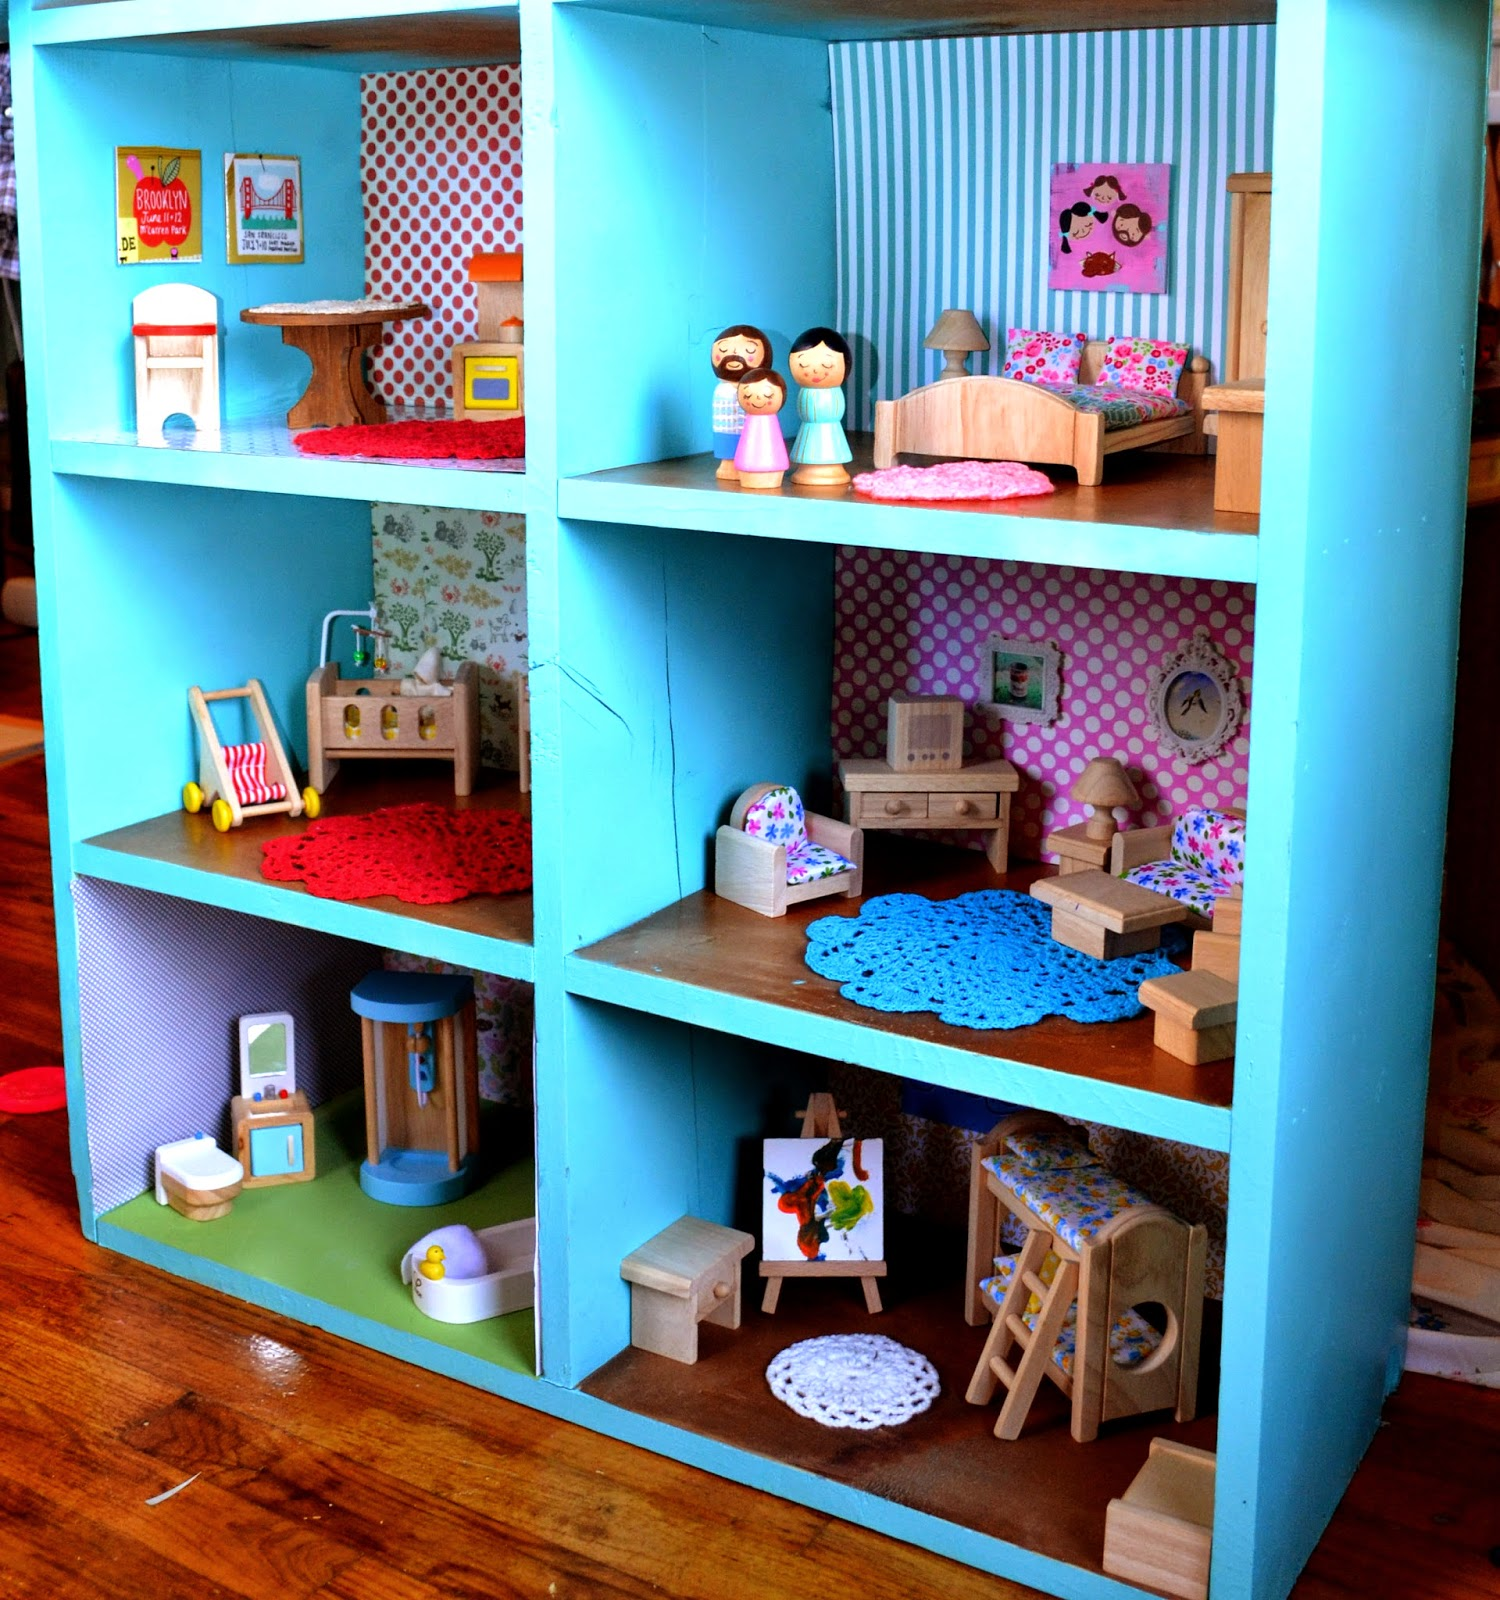 Scrapbook paper dollhouse wallpaper - These Sweet Little Peg People Resemble My Family I Have Been Meaning To Paint Our Dog On A Peg But I Have Not Gotten Around To It